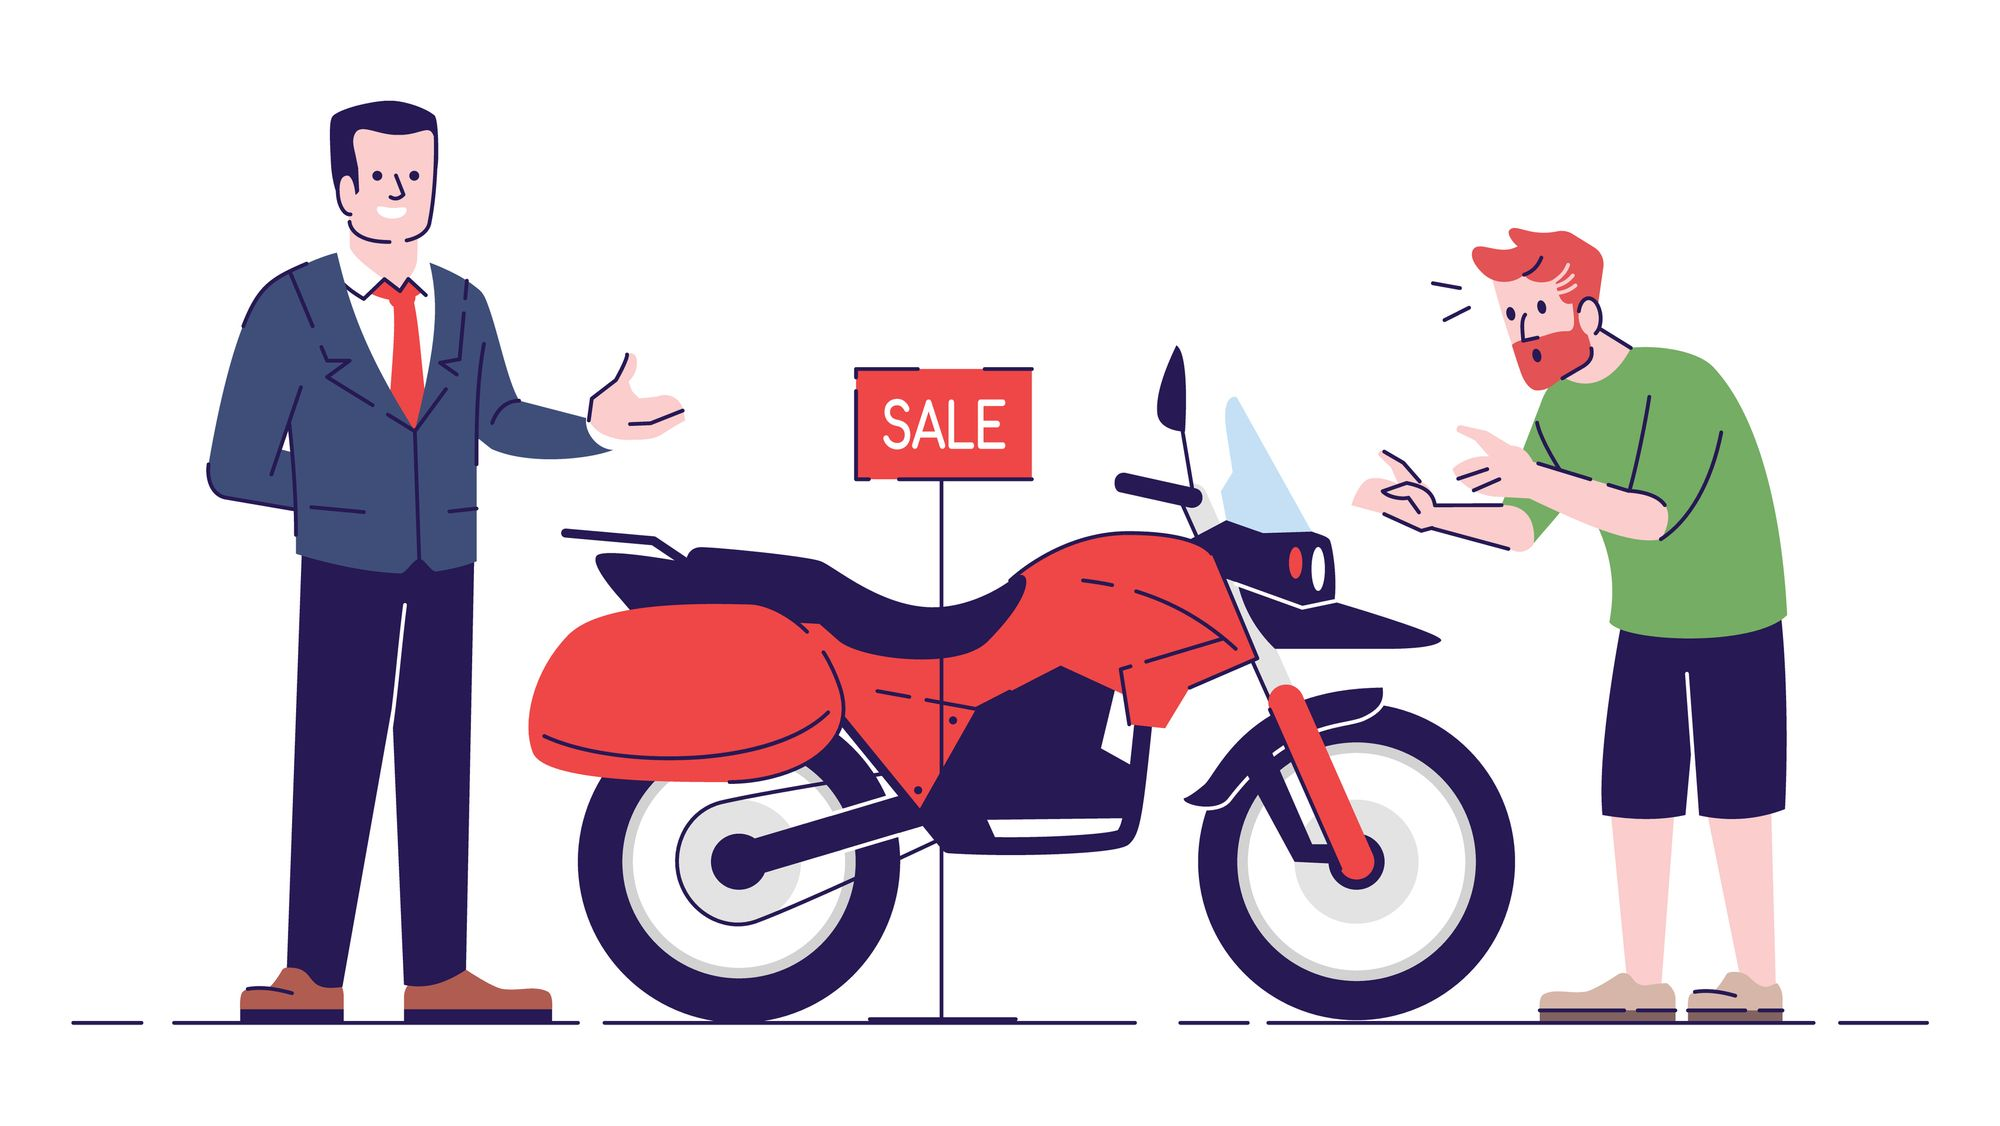 Are you interested to purchase a second-hand bike? Follow all these tips throughout the process